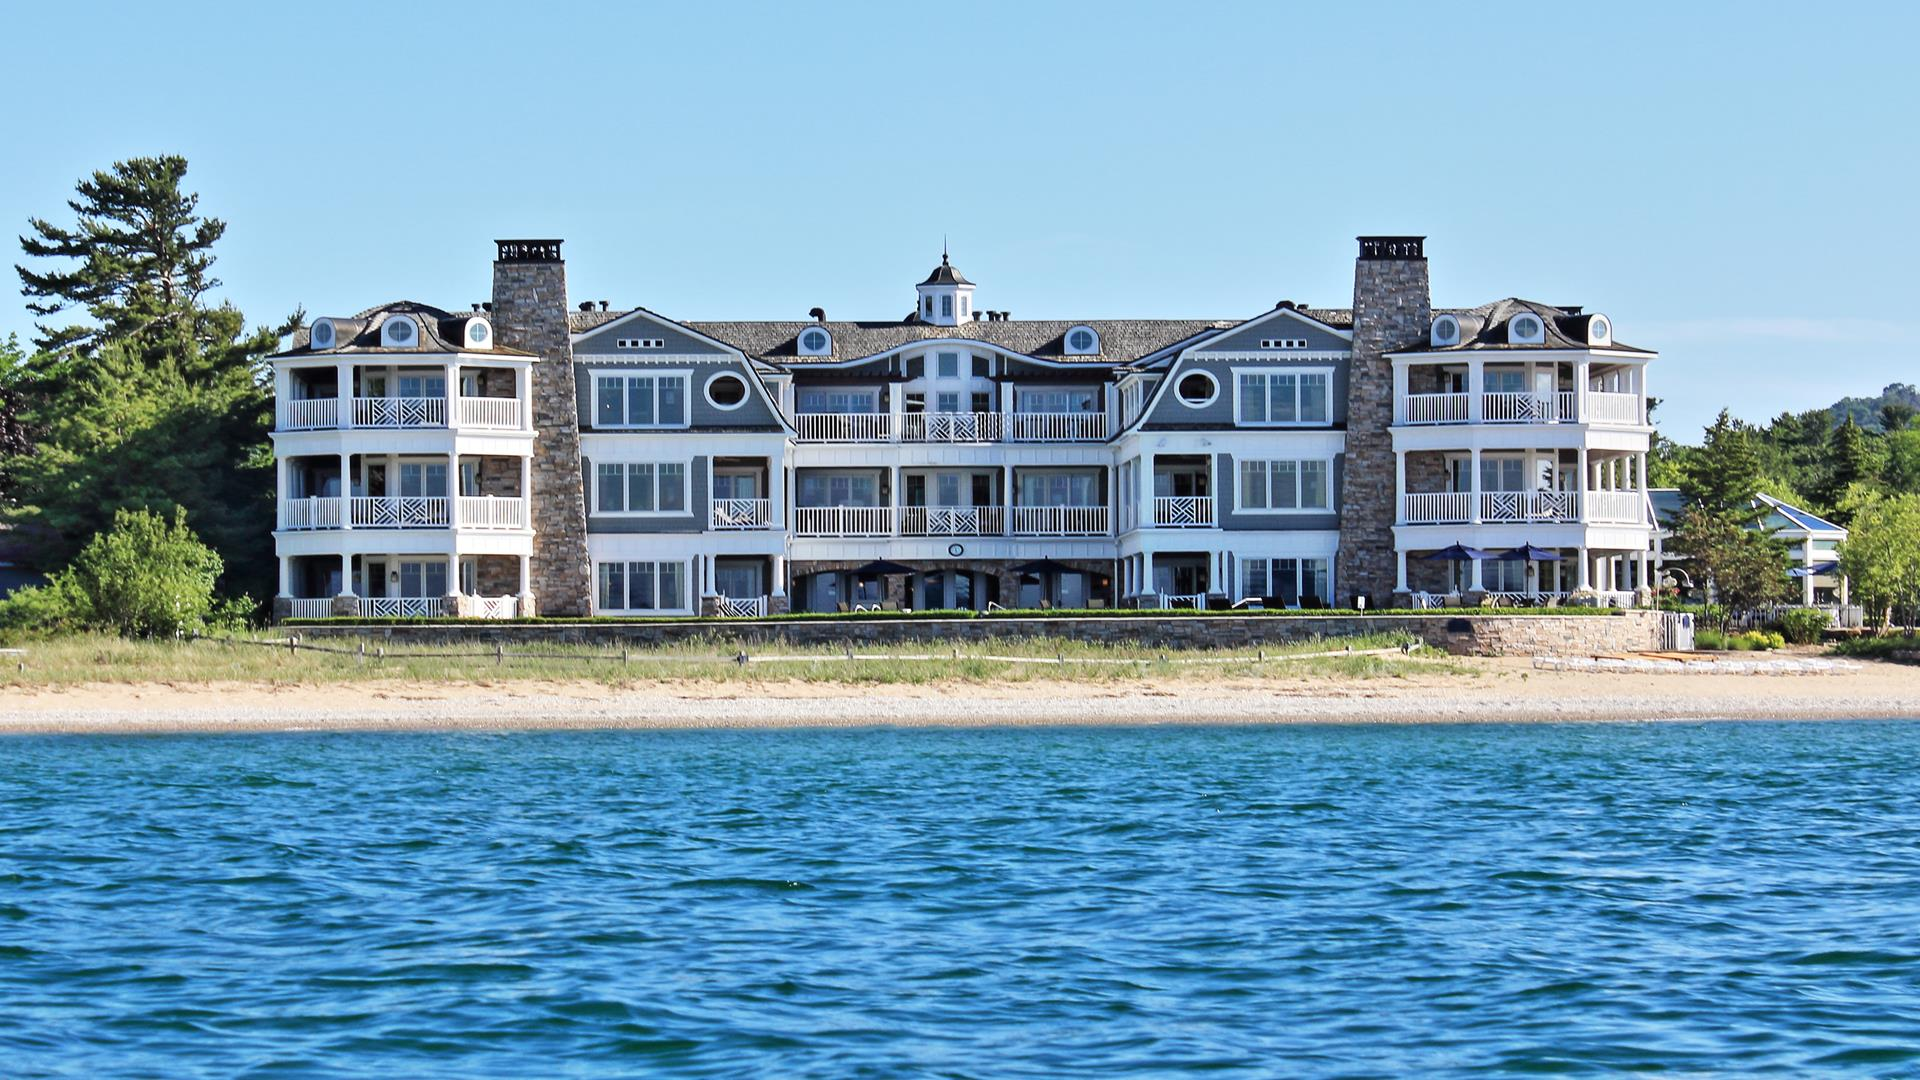 Exterior from Lake Michigan